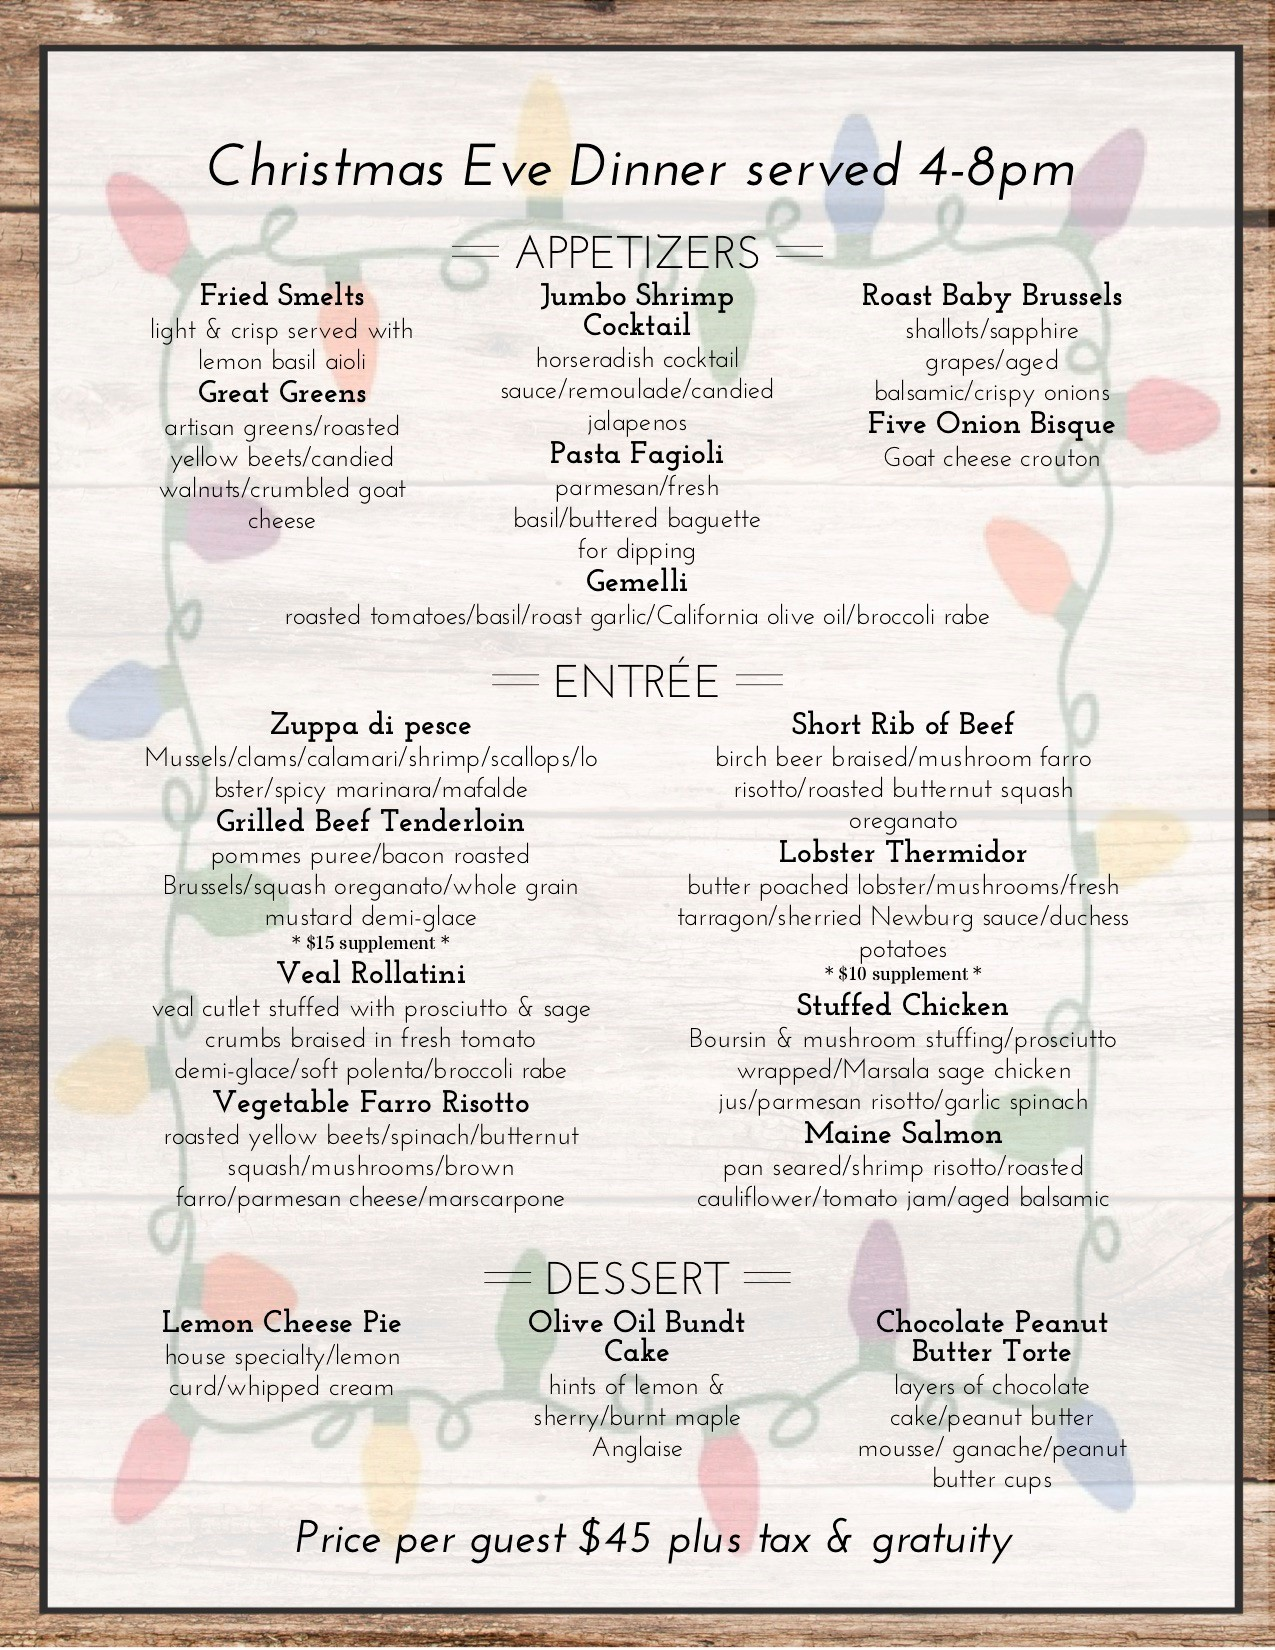 Christmas Eve Dinner Menu. Dinner served from 4pm-8pm. Price per guest $45 plus tax & gratuity.